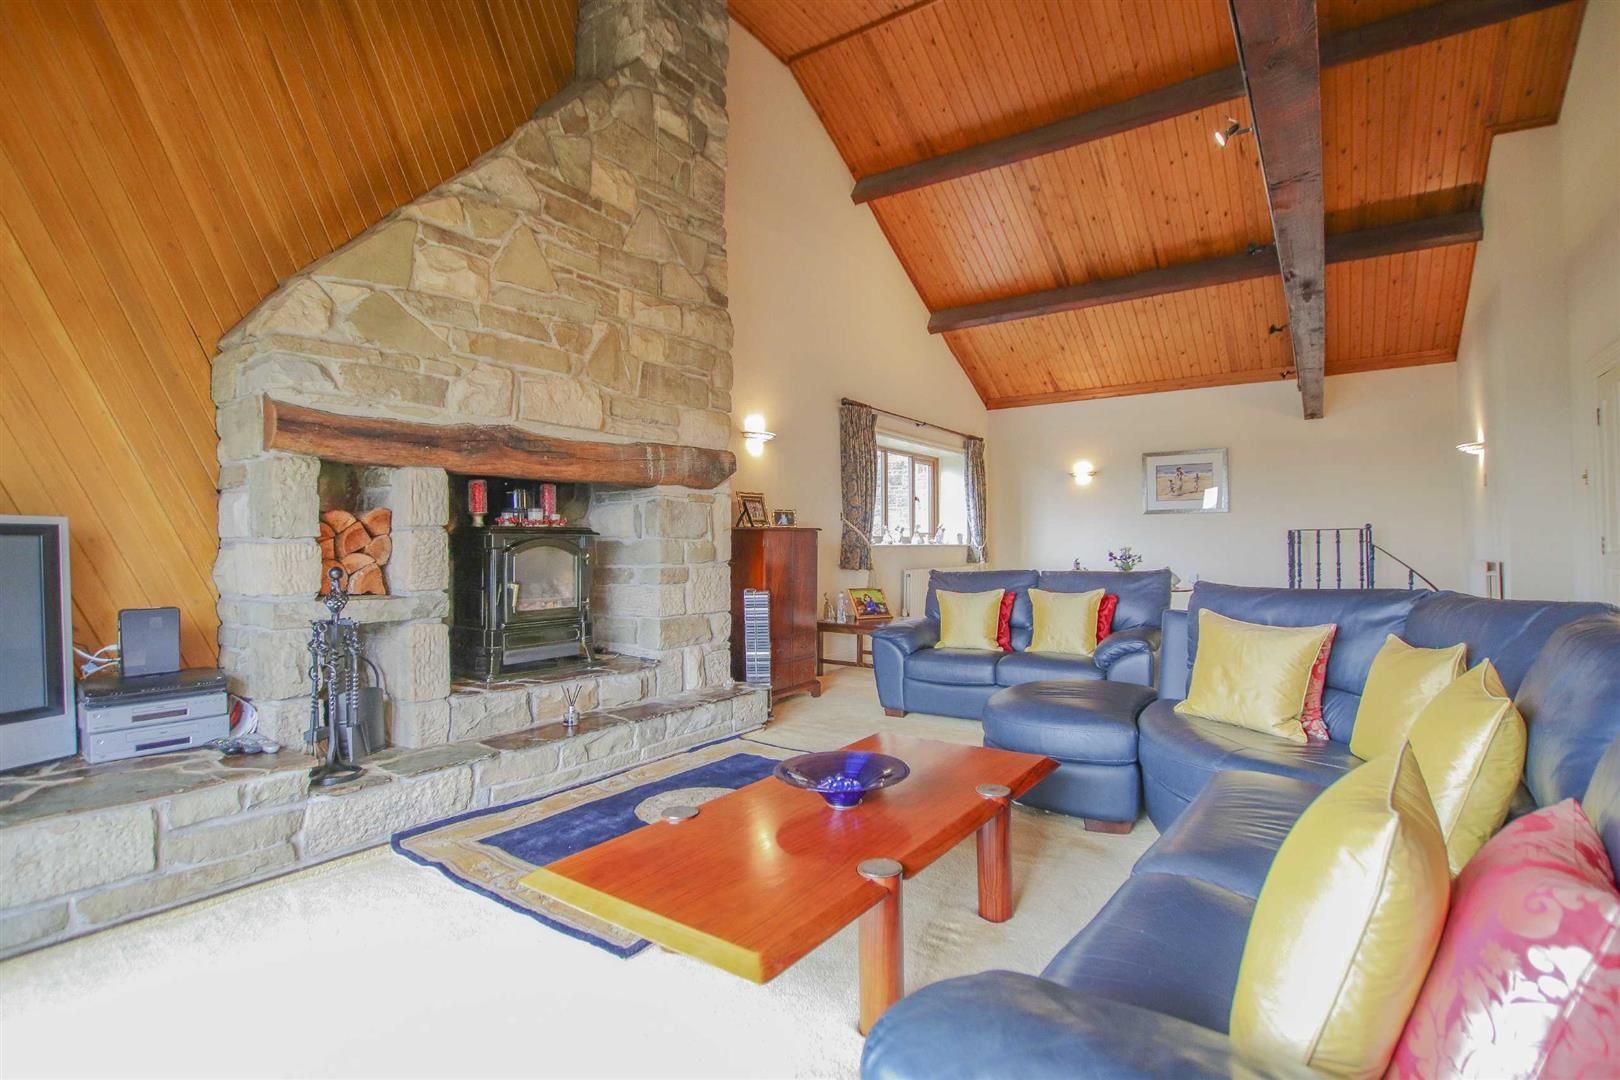 4 Bedroom Barn Conversion For Sale - p033135_02.jpg